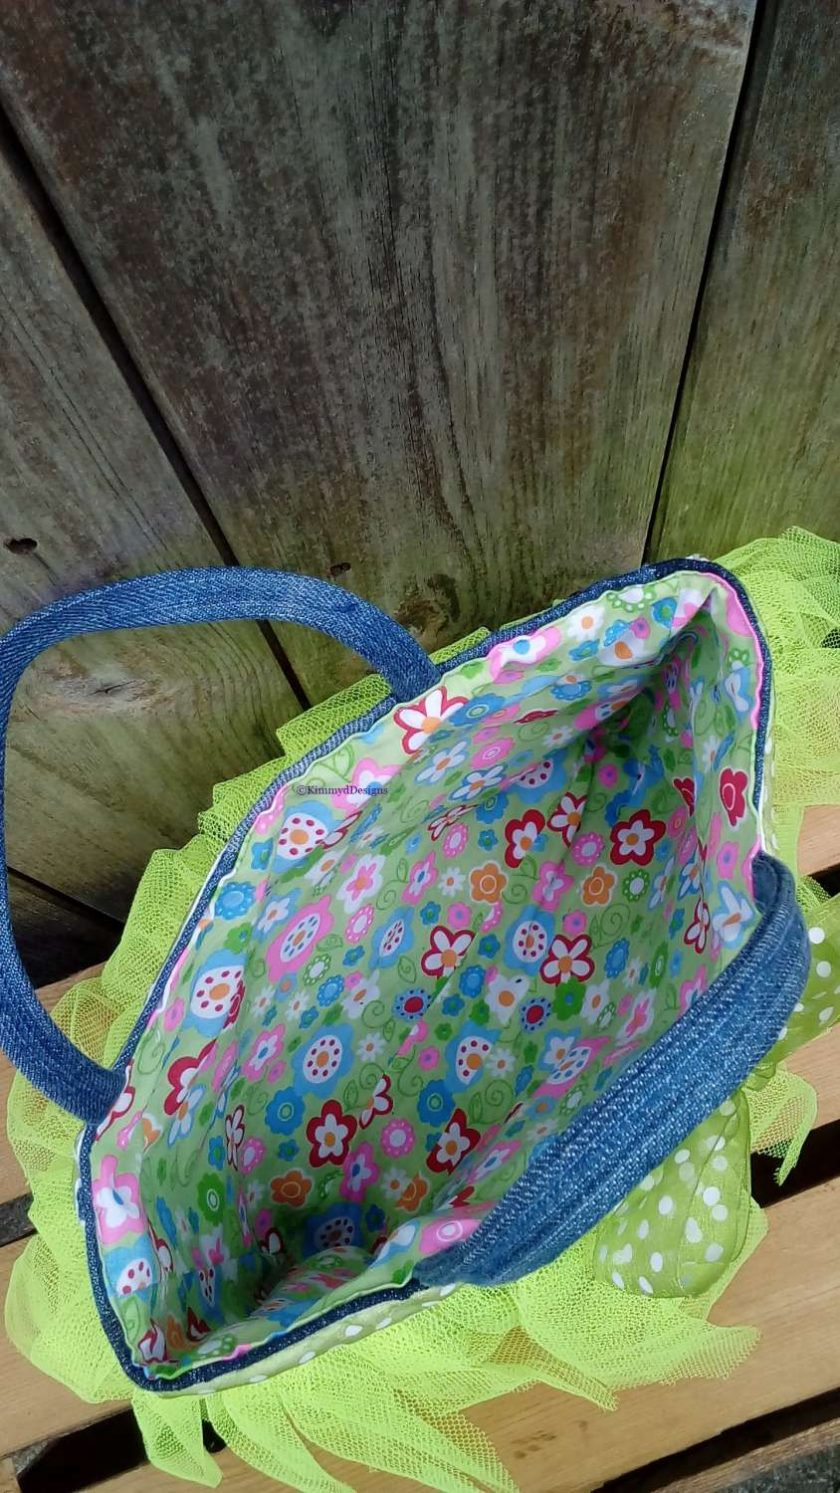 Kids Handbag (from recycled jeans) Tutu with Bow Fully Lined Bag Gift FREE UK POSTAGE 5